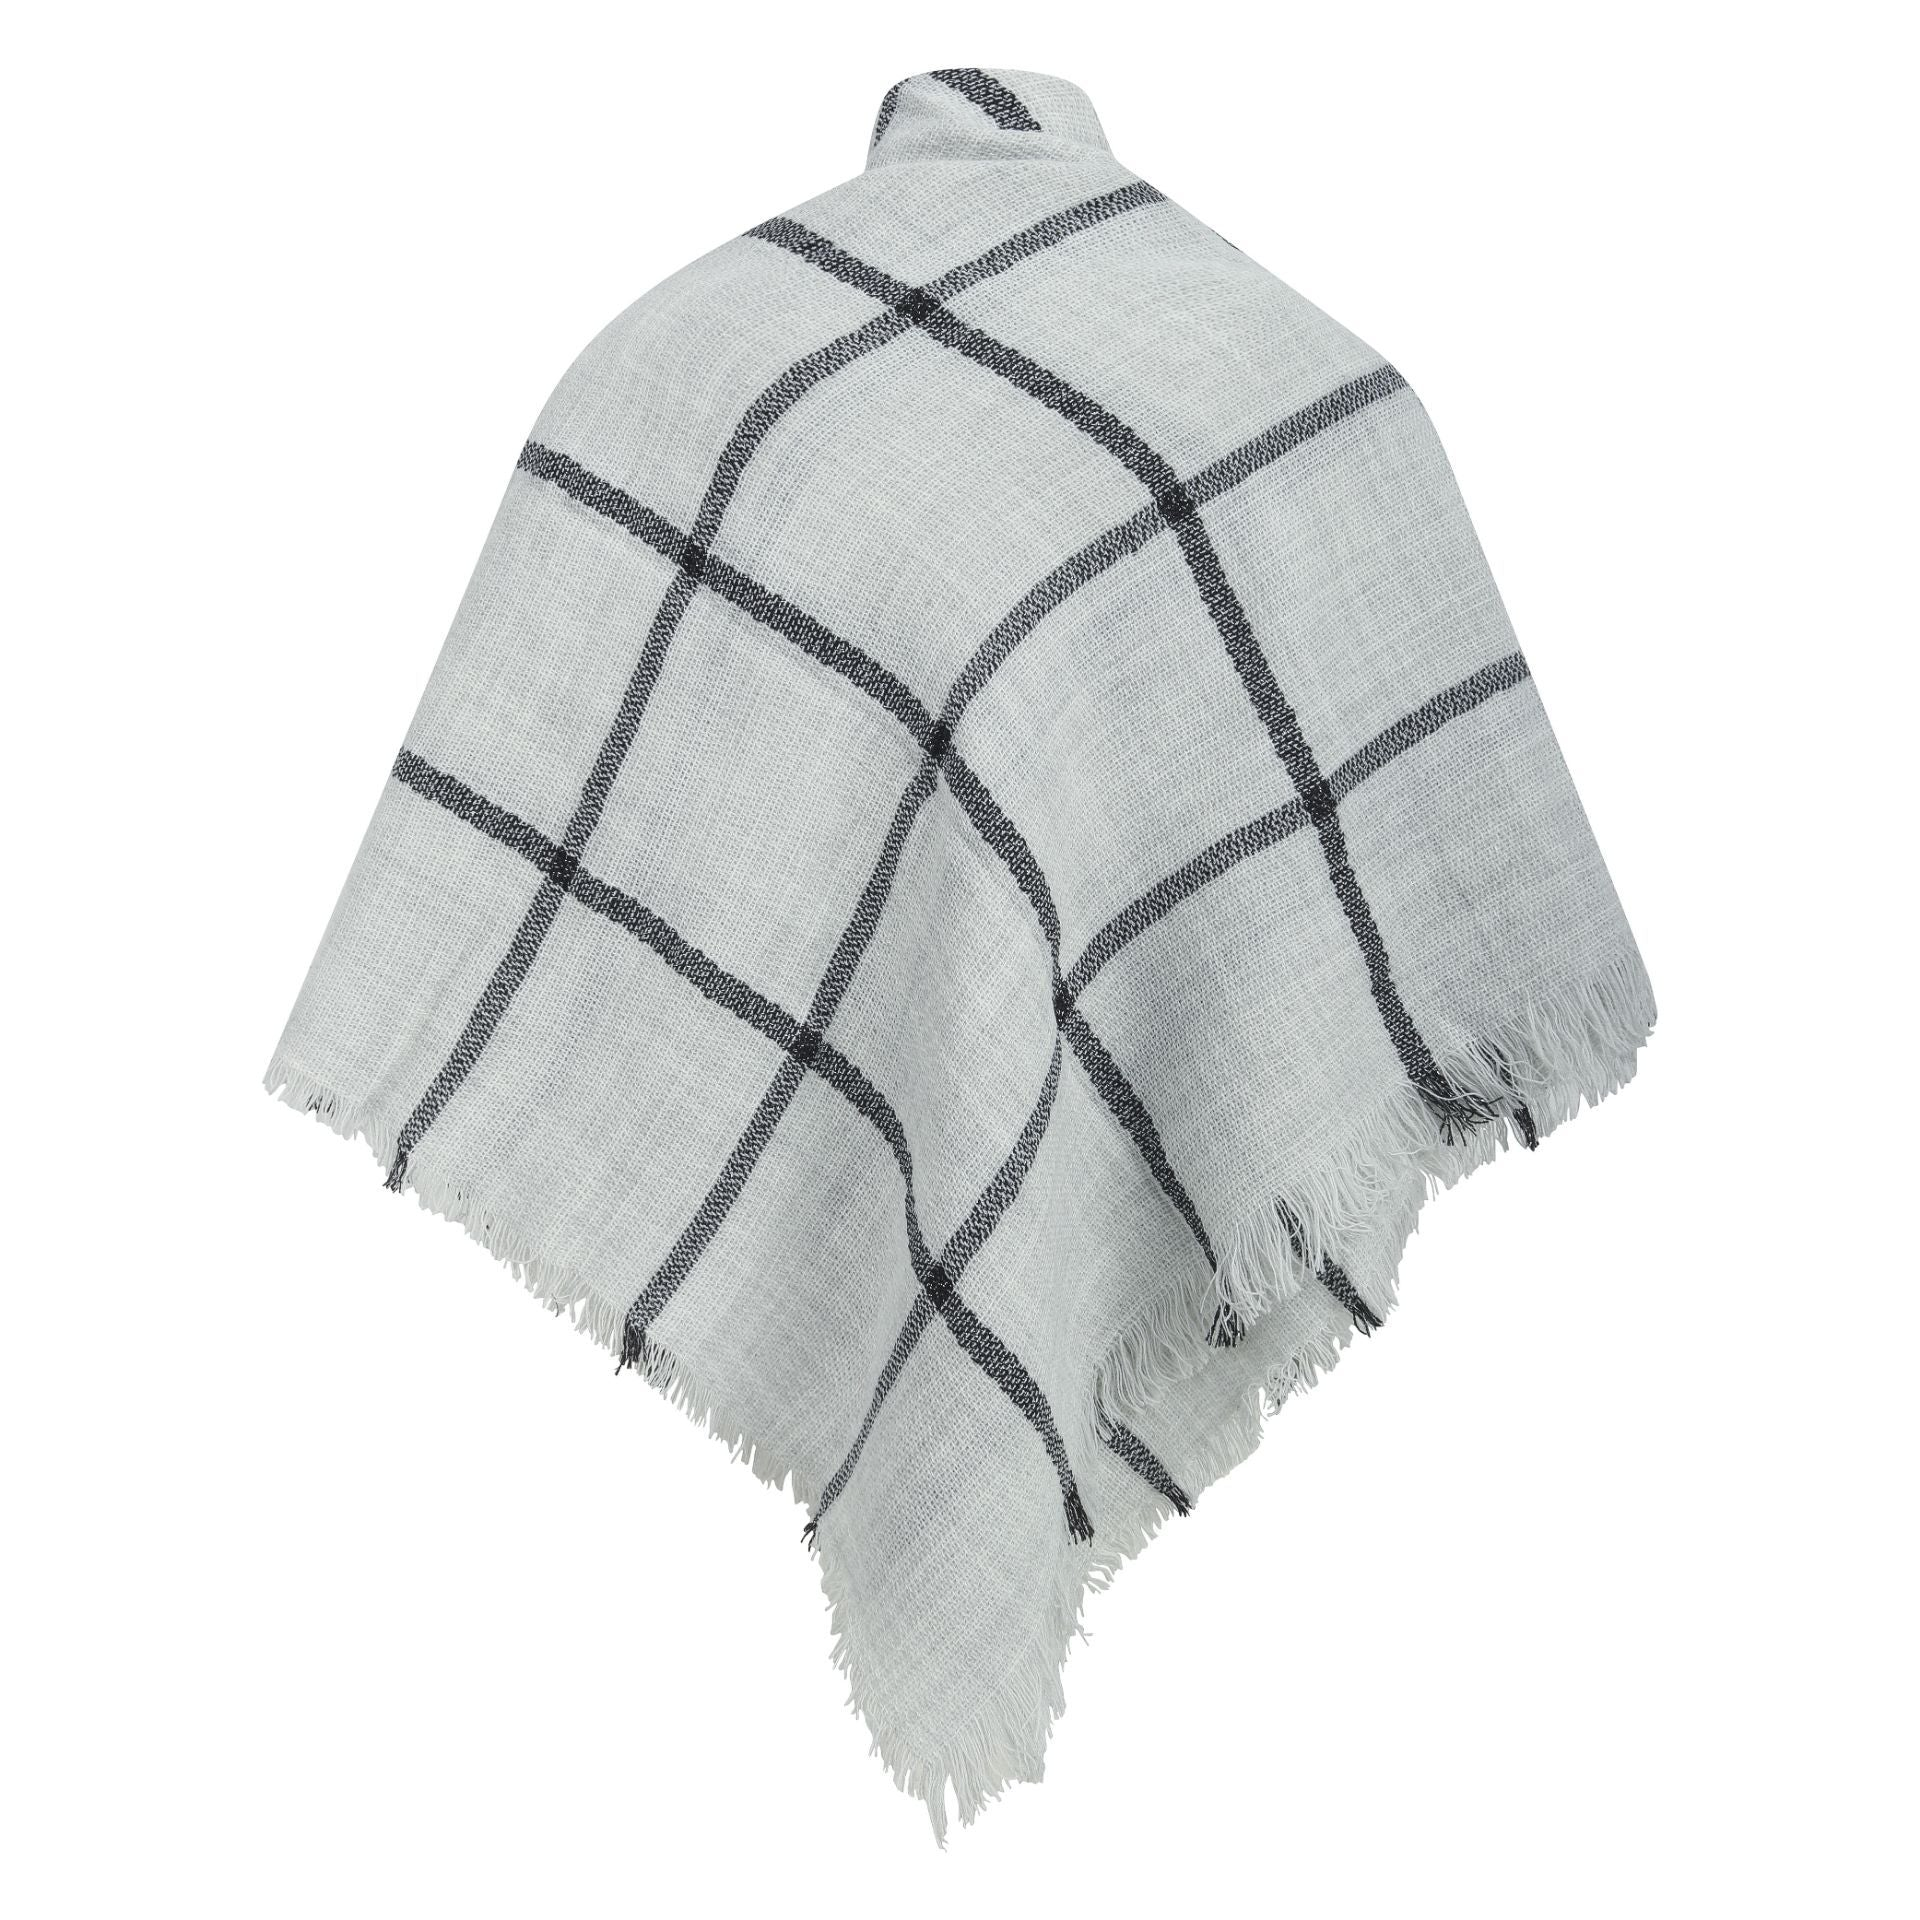 East Village Denia Scarf - grey with black line check